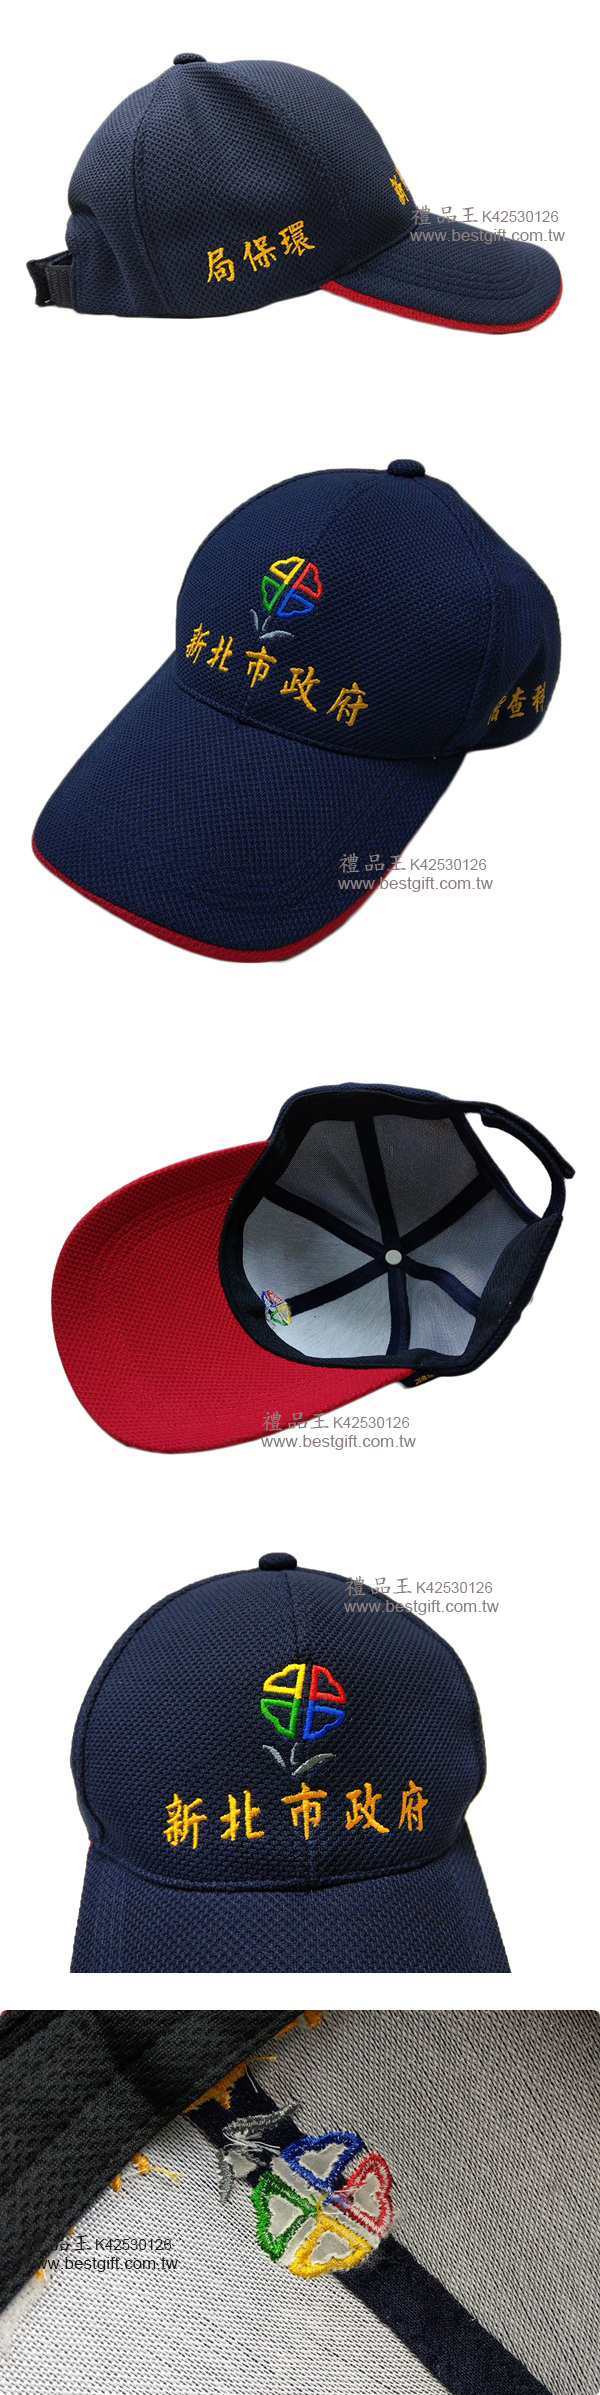 http://www.bestgift.com.tw/goods.php?id=2071